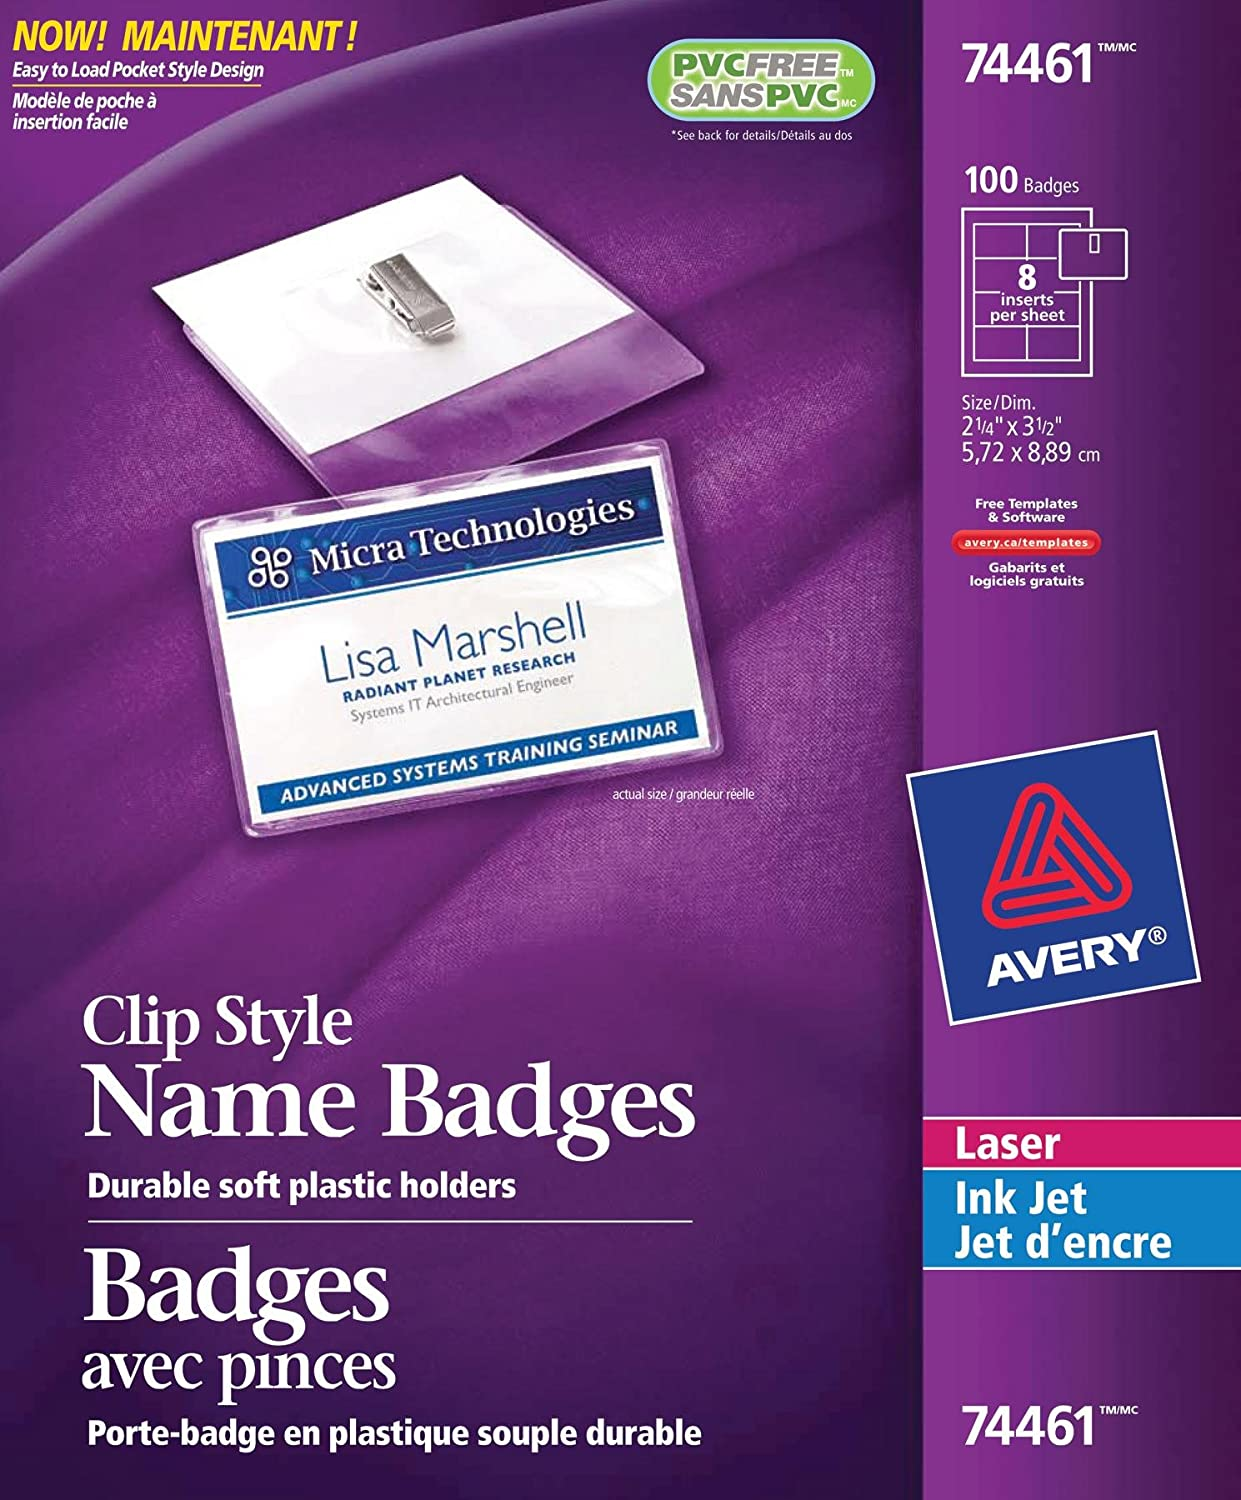 Avery Garment Friendly Clip Style Name Badge Kit for Laser and Inkjet Printers, 2-5/8 x 3-1/2, Clear, 100 Pack (74461) 2-5/8 x 3-1/2 Avery Dennison CA